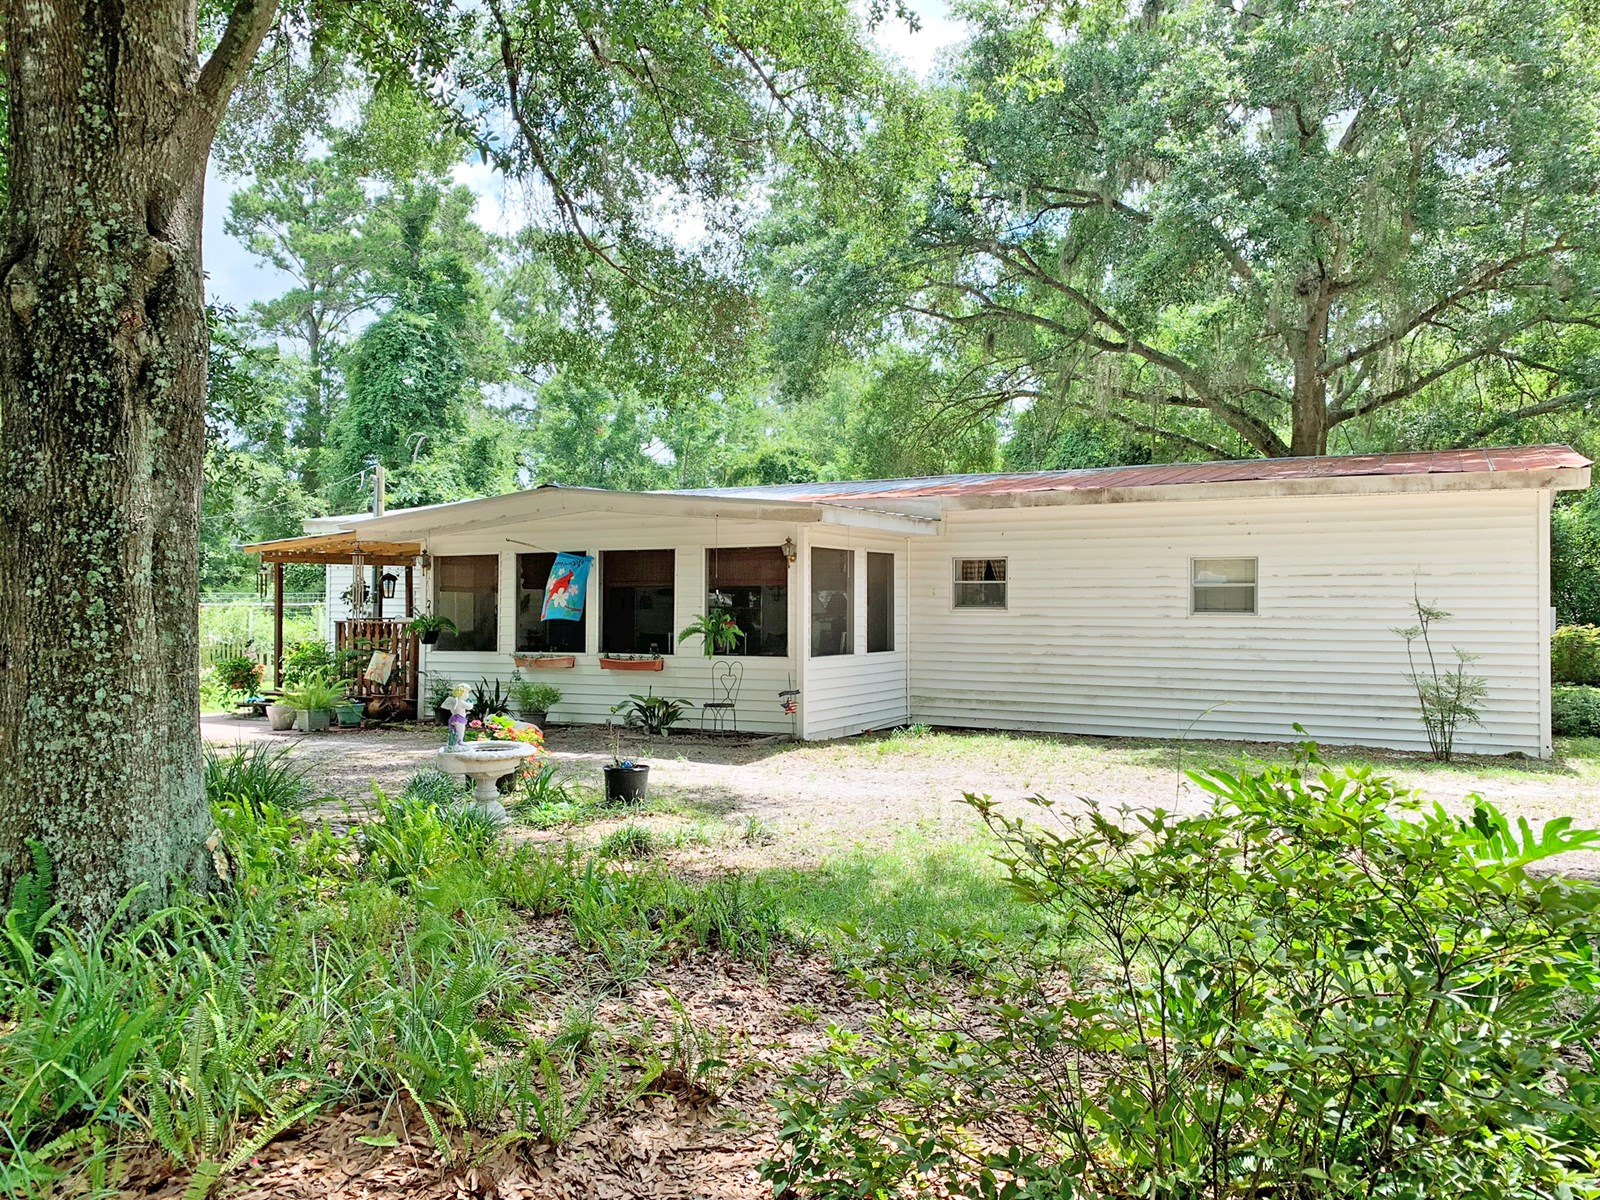 3BR/2BA HOME IN TOWN FOR SALE IN LAKE CITY, FL